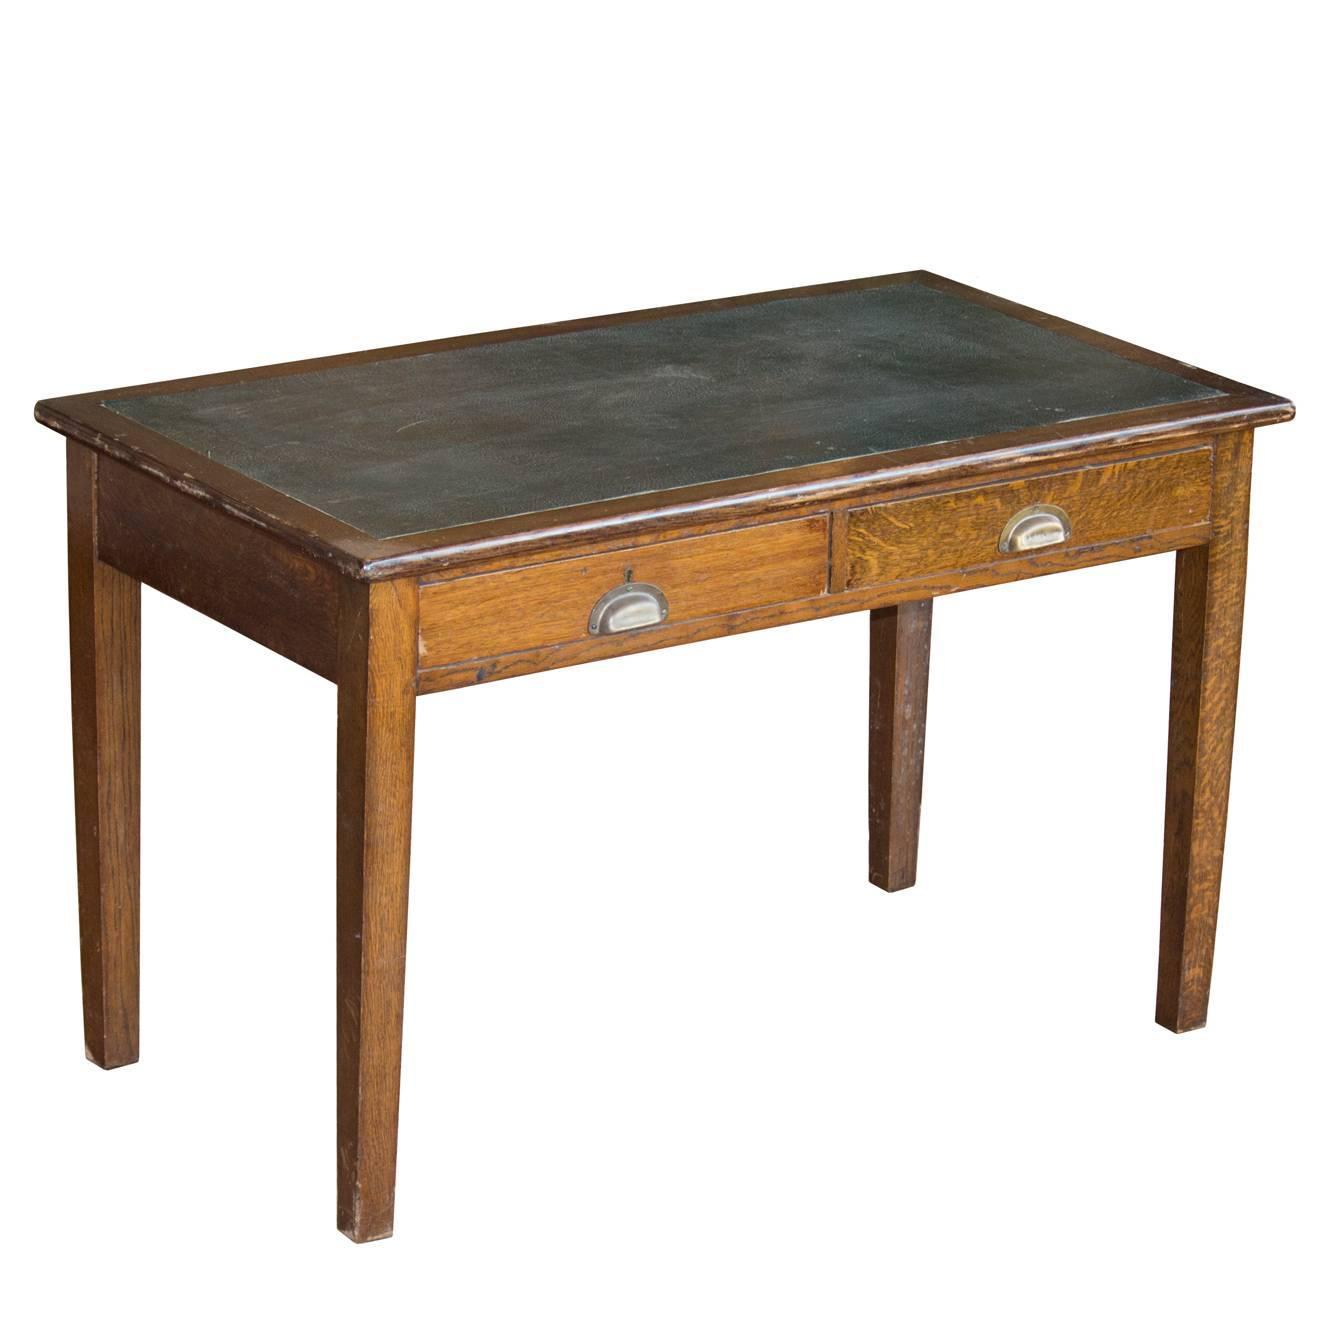 English arts and crafts oak writing desk for sale at 1stdibs for Crafting desks for sale